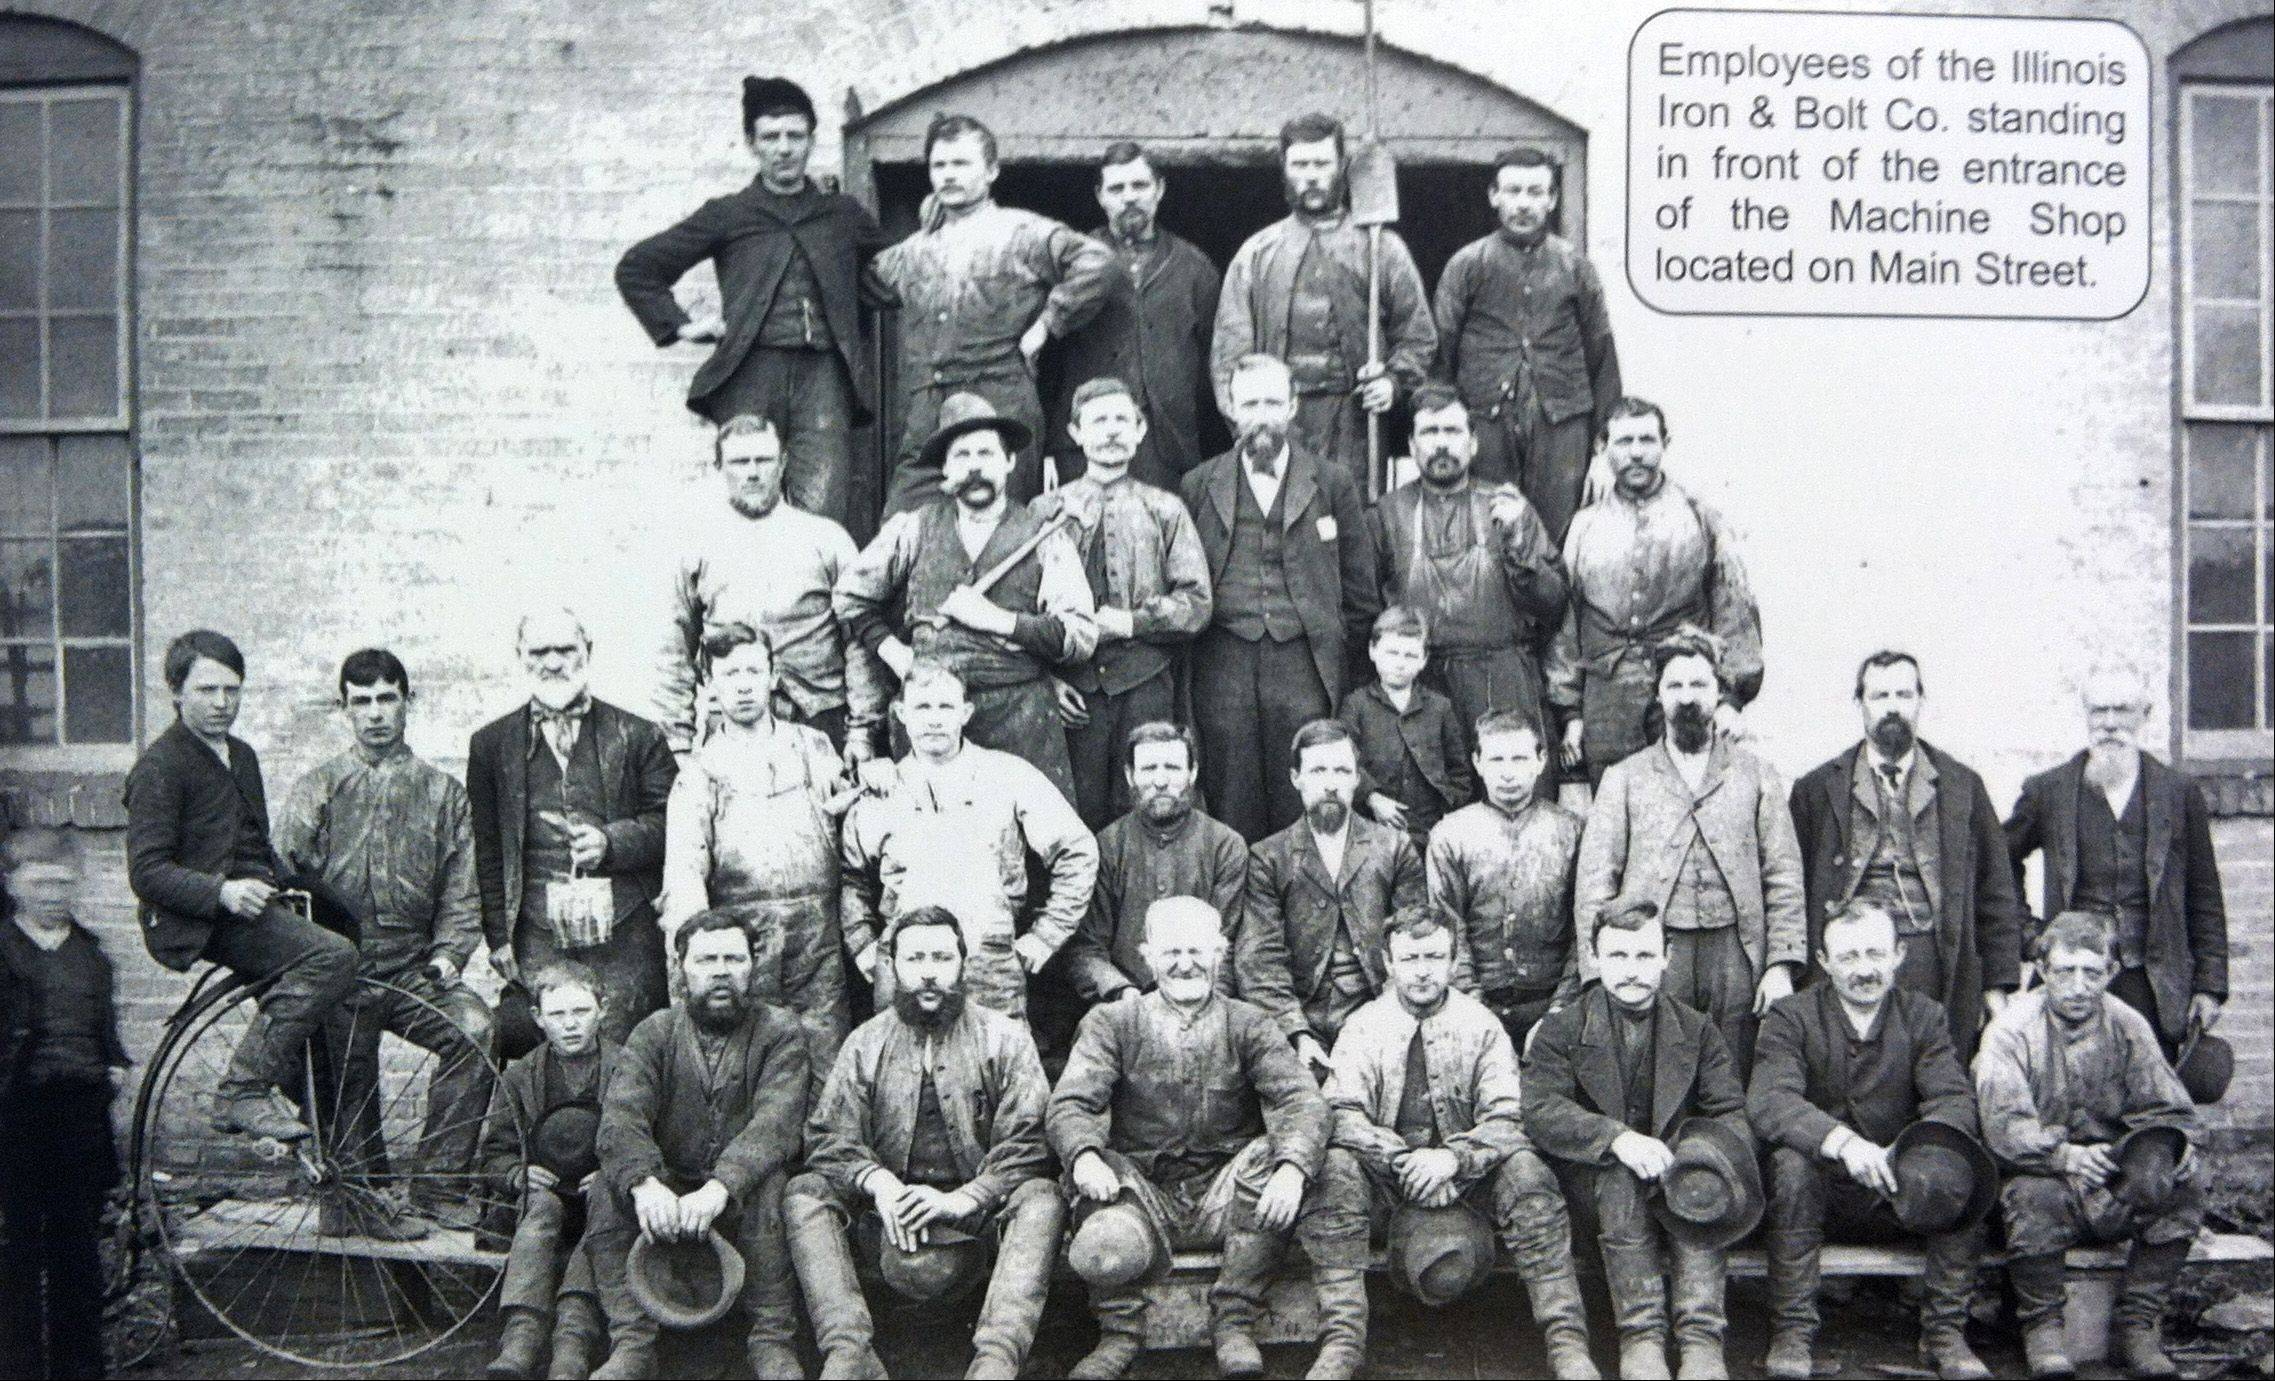 In this undated photograph, workers from the Illinois Iron & Bolt Company stand in front of the company's machine shop on Main Street. The company's workweek was 10 hours a day and six days a week.